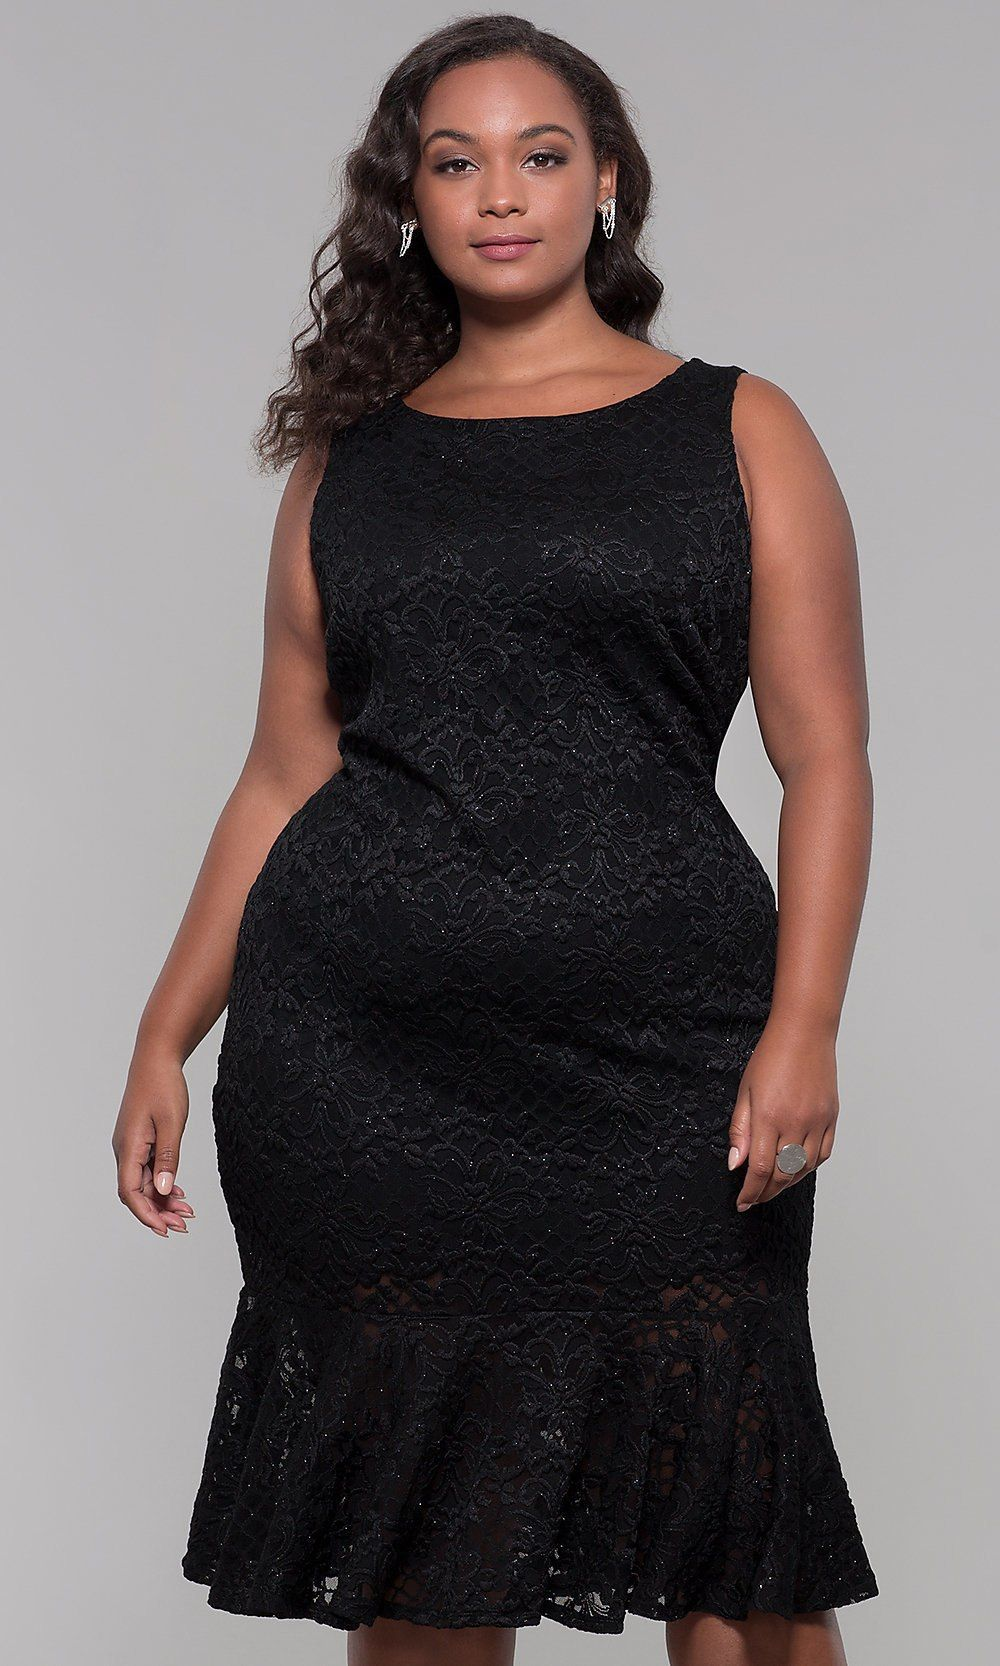 Knee-Length Black Lace Plus-Size Wedding-Guest Dress in 2019 ...